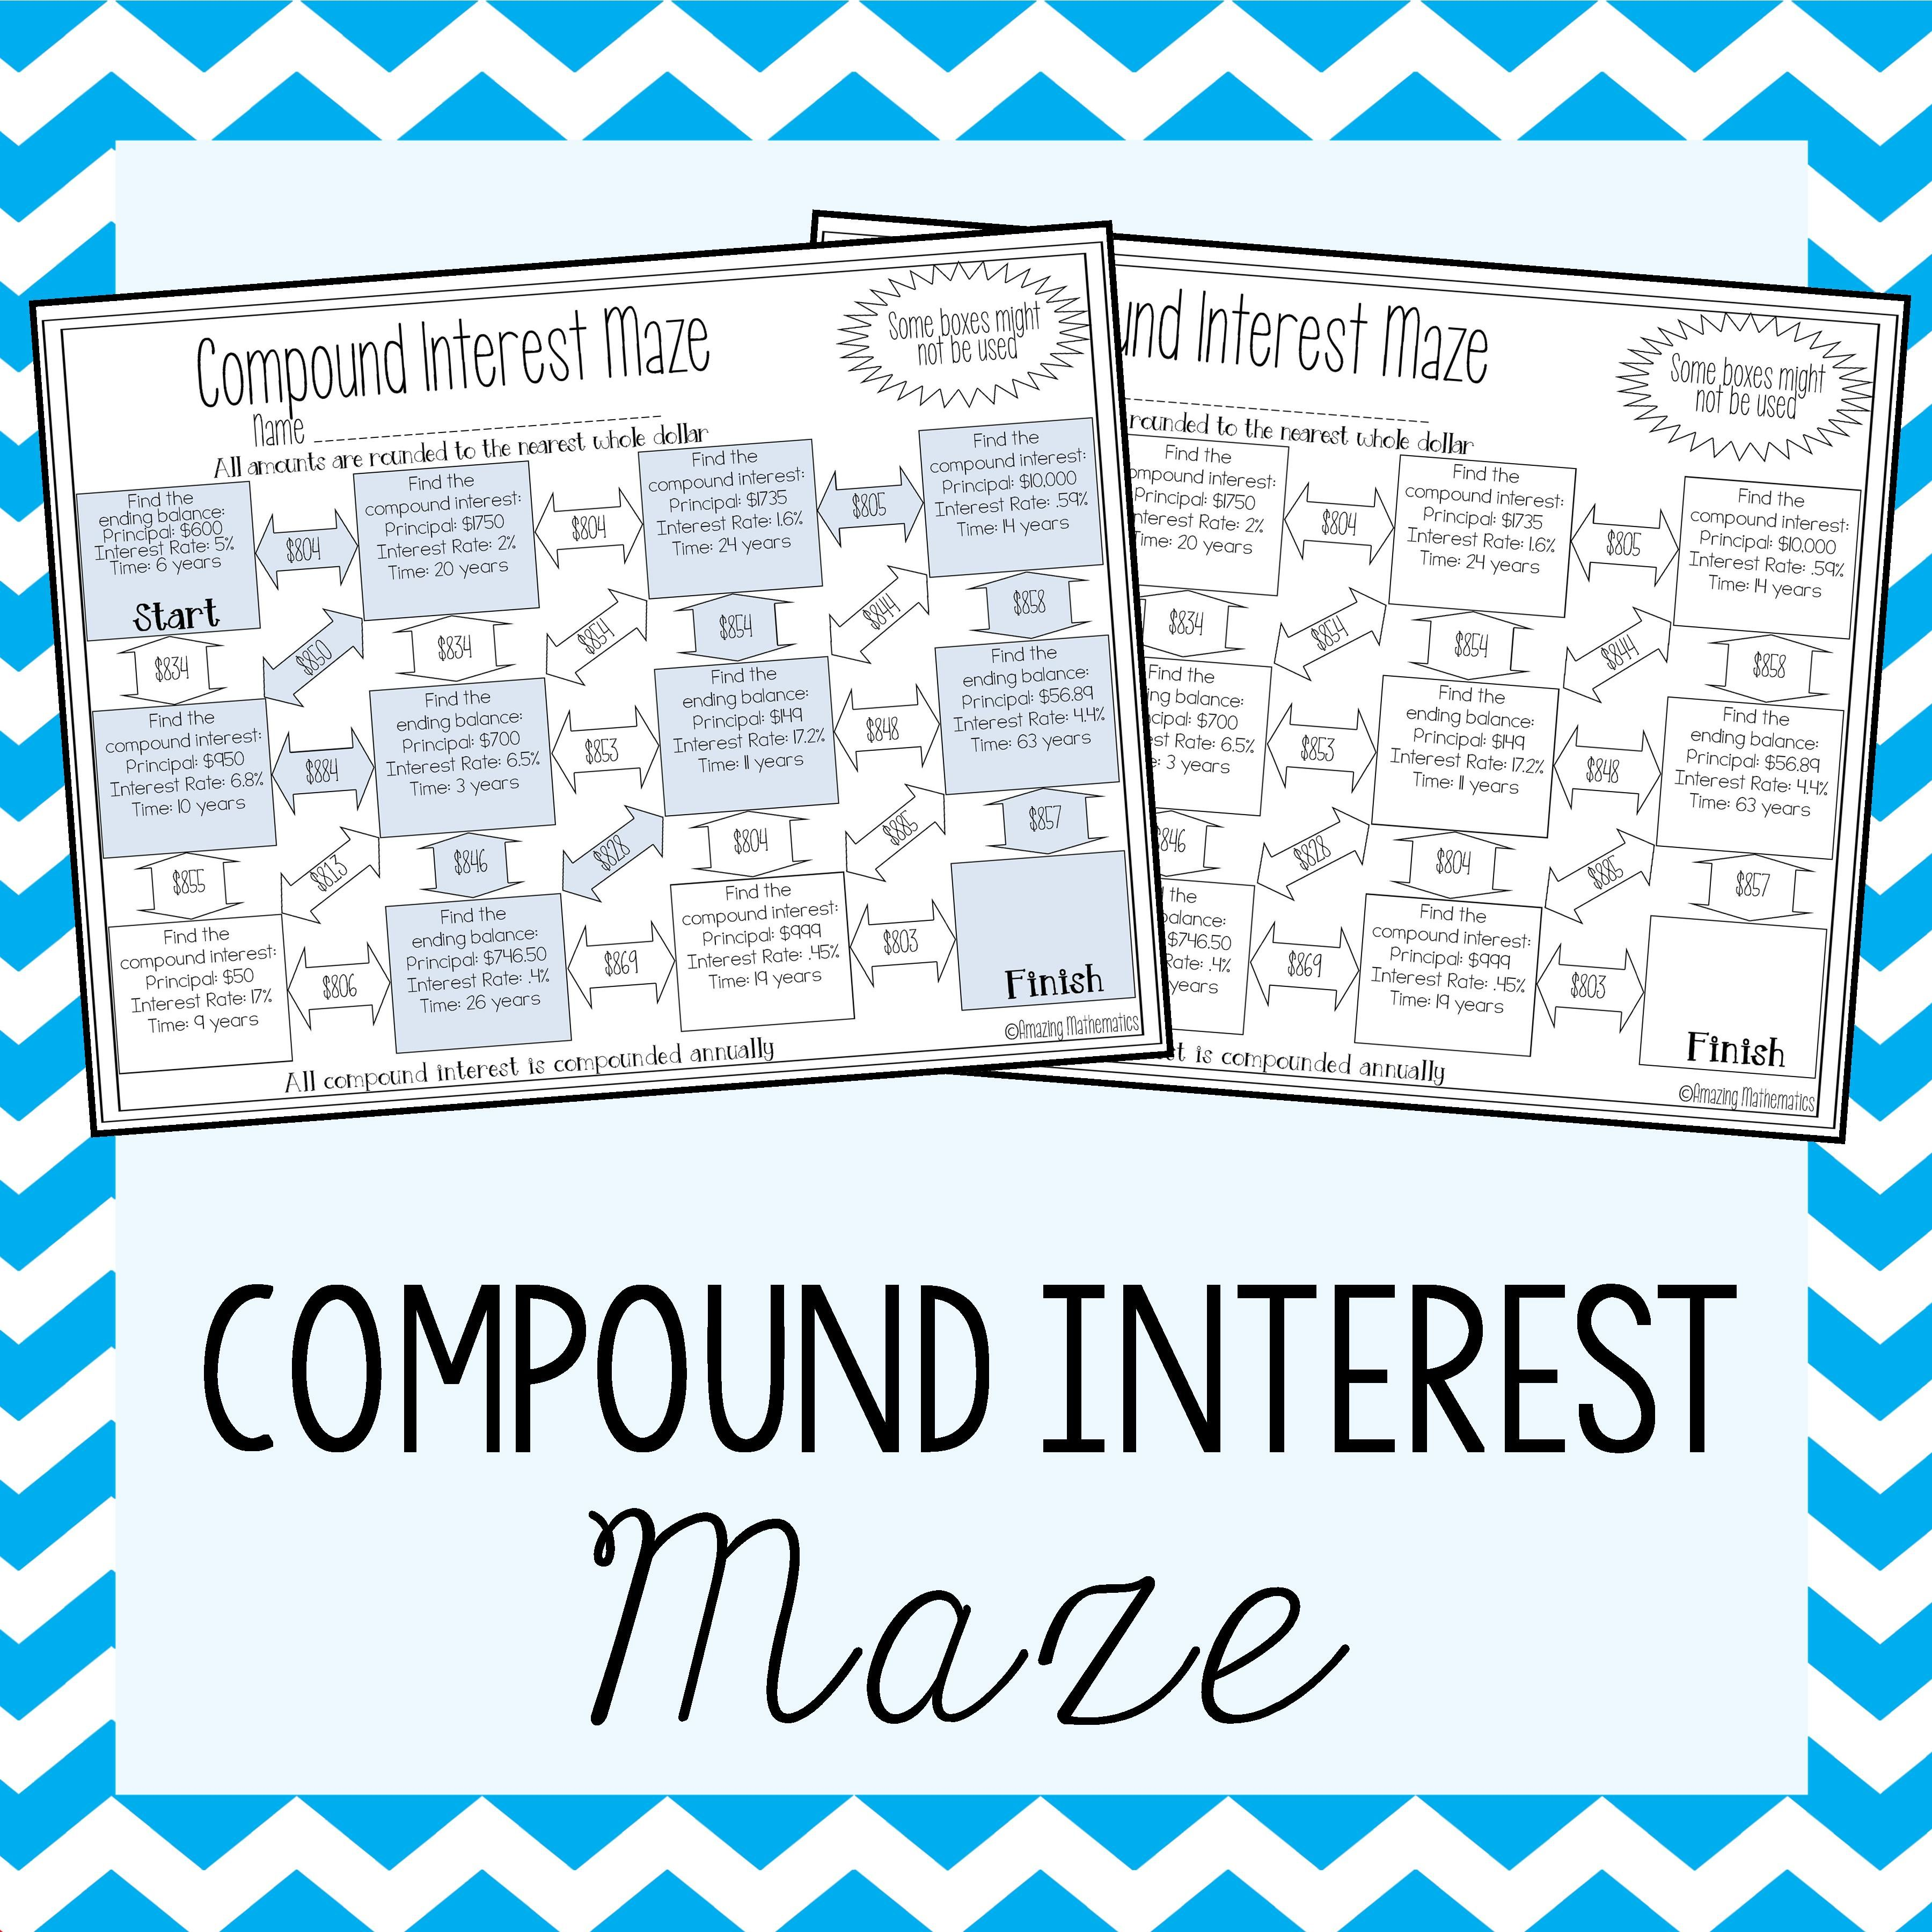 Worksheets Compound Interest Practice Worksheet compound interest maze simples e do 8ao ano these simple mazes would be such a fun activity for my 8th grade